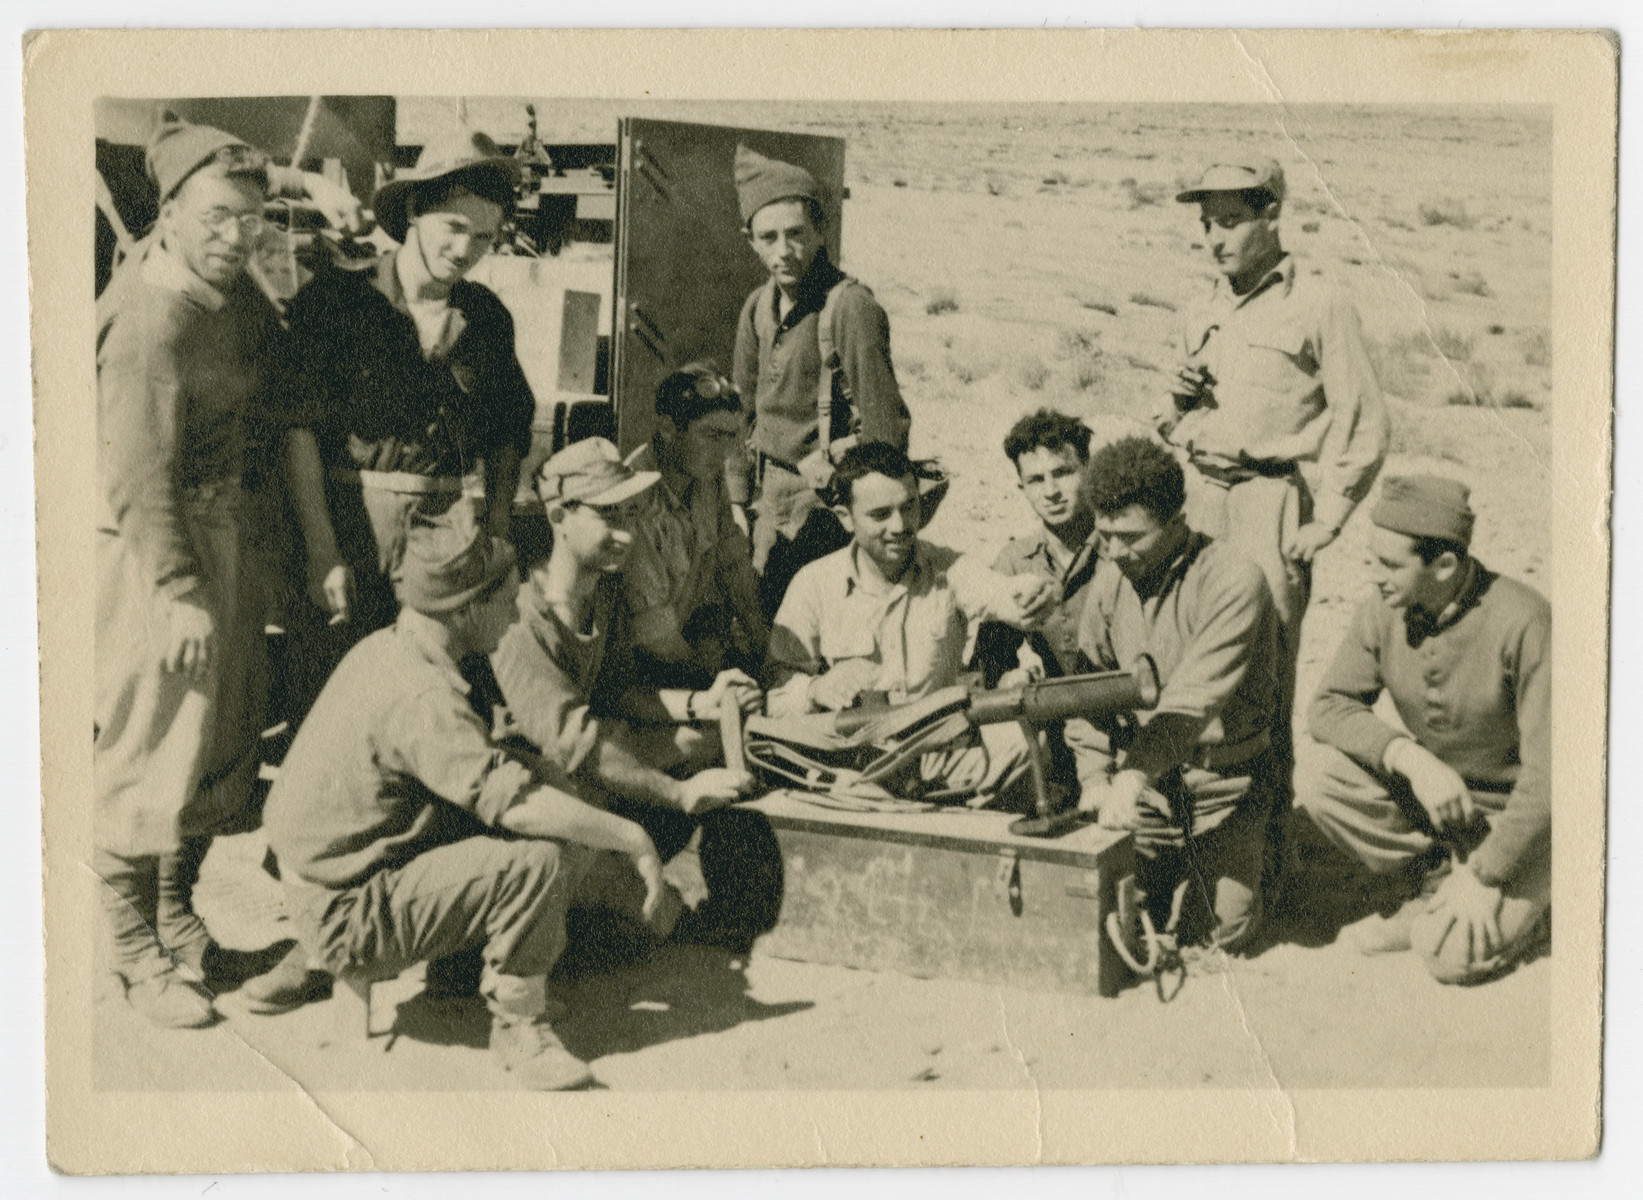 Hersh Makowski demonstrates to other soldiers in the Alexandroni Brigade how to use a British anti-tank weapon.  He was the only member of his brigade to have received training by the British Army.